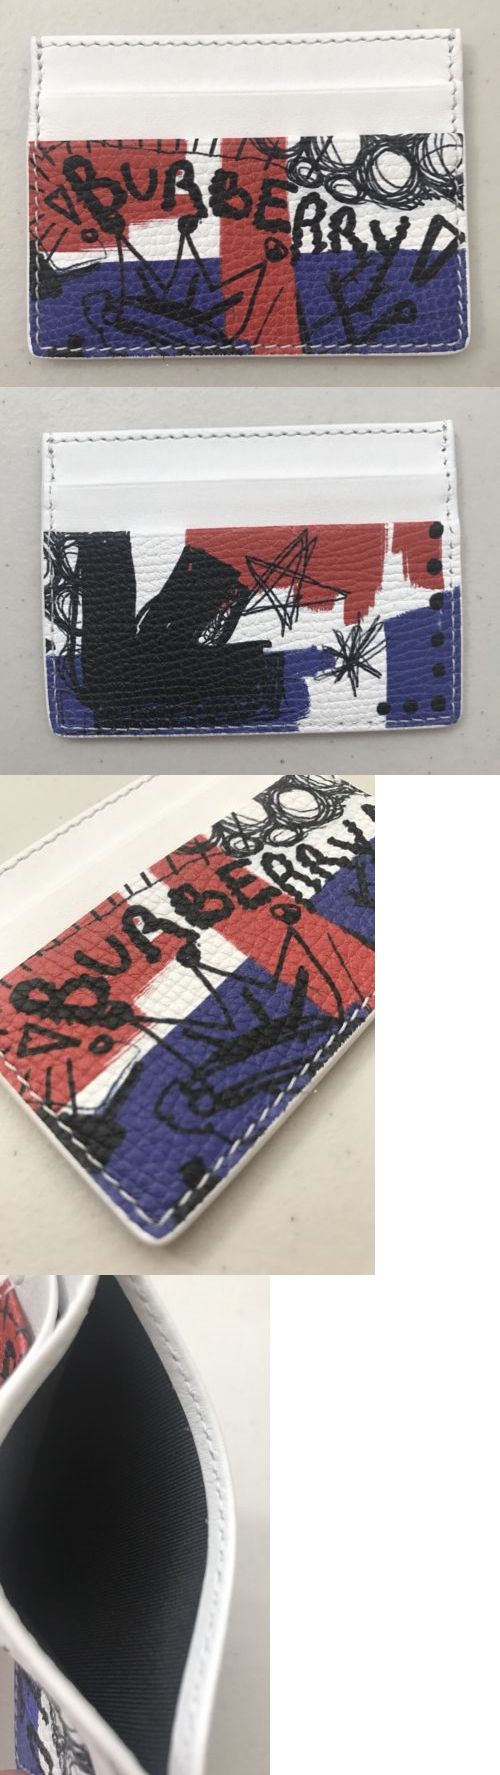 948 Best Business And Credit Card Cases 105544 Images On Pinterest